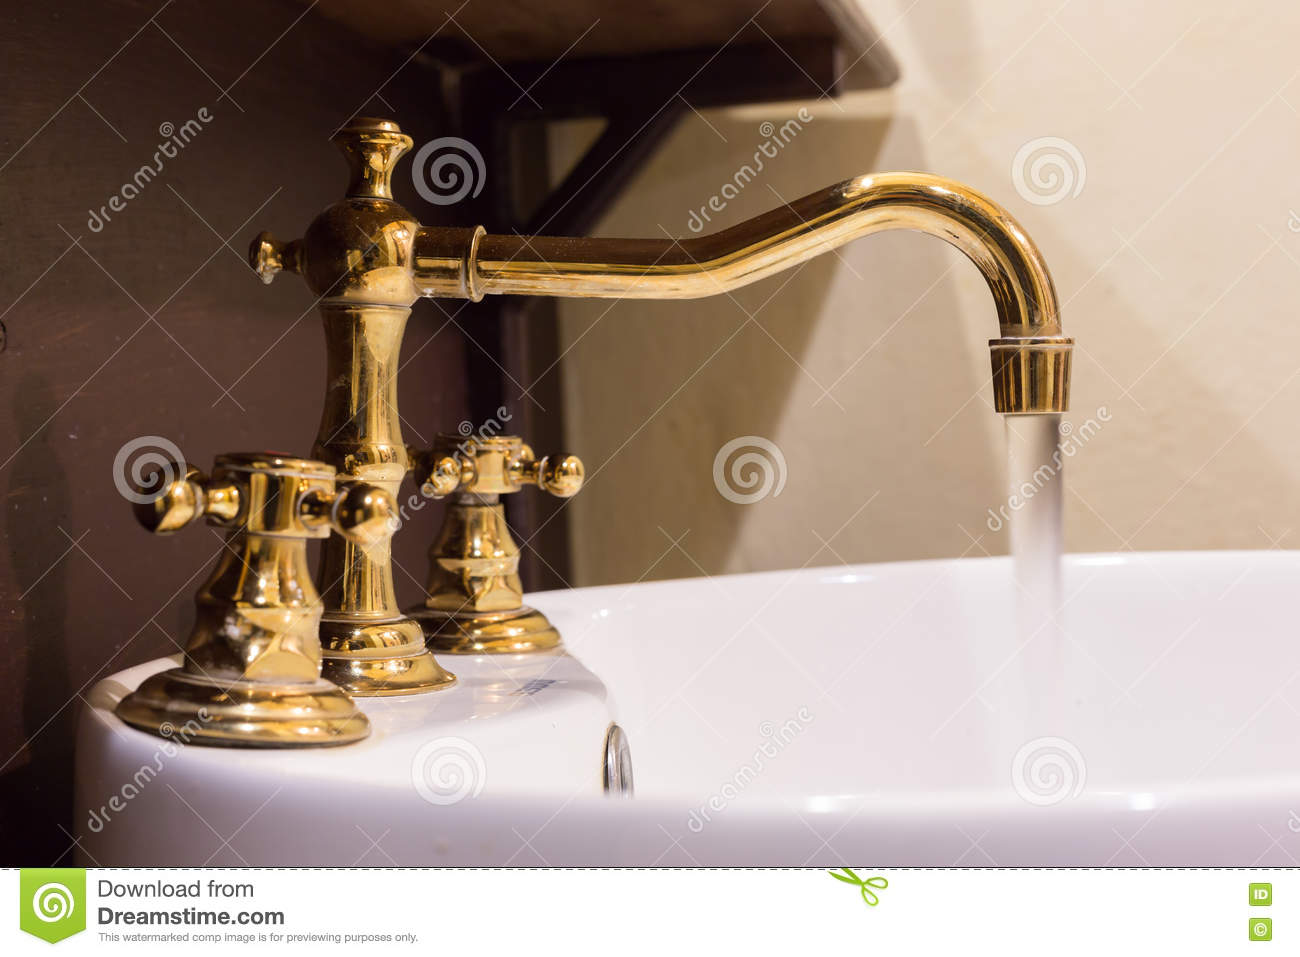 Famous Tub Paint Tiny Bathtub Repair Contractor Rectangular How To Paint A Bath Tub Painting The Bathtub Young Miracle Method Refinishing SoftReglazing Shower Gold Faucet And Washbasin Design Stock Photo   Image: 79582464